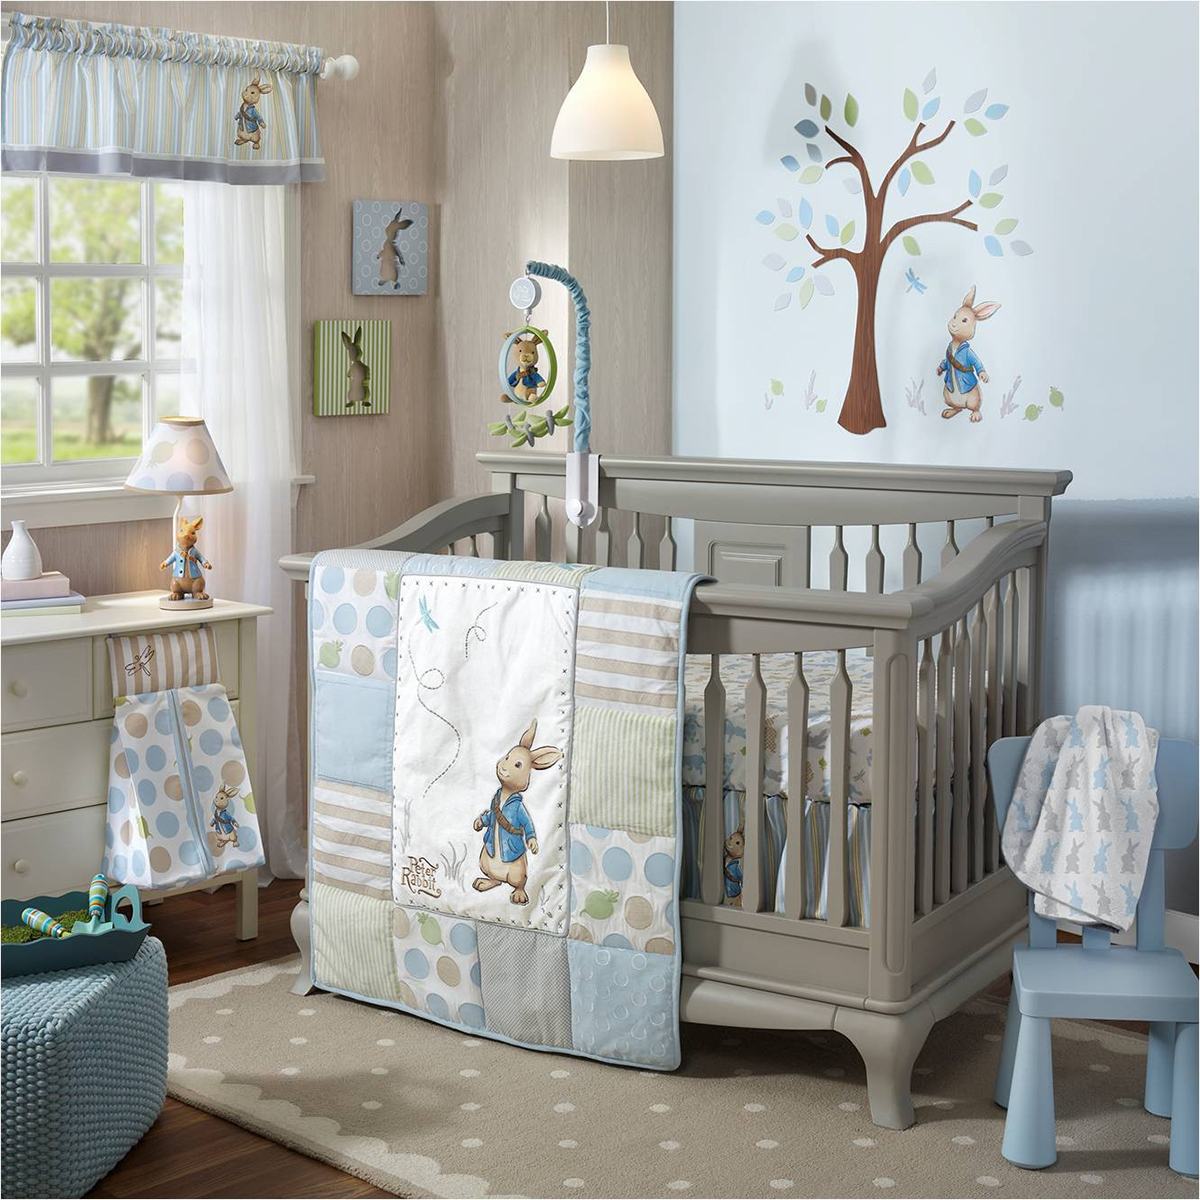 PLEASE CHOOSE BRAND NEW PETER RABBIT NURSERY COLLECTION